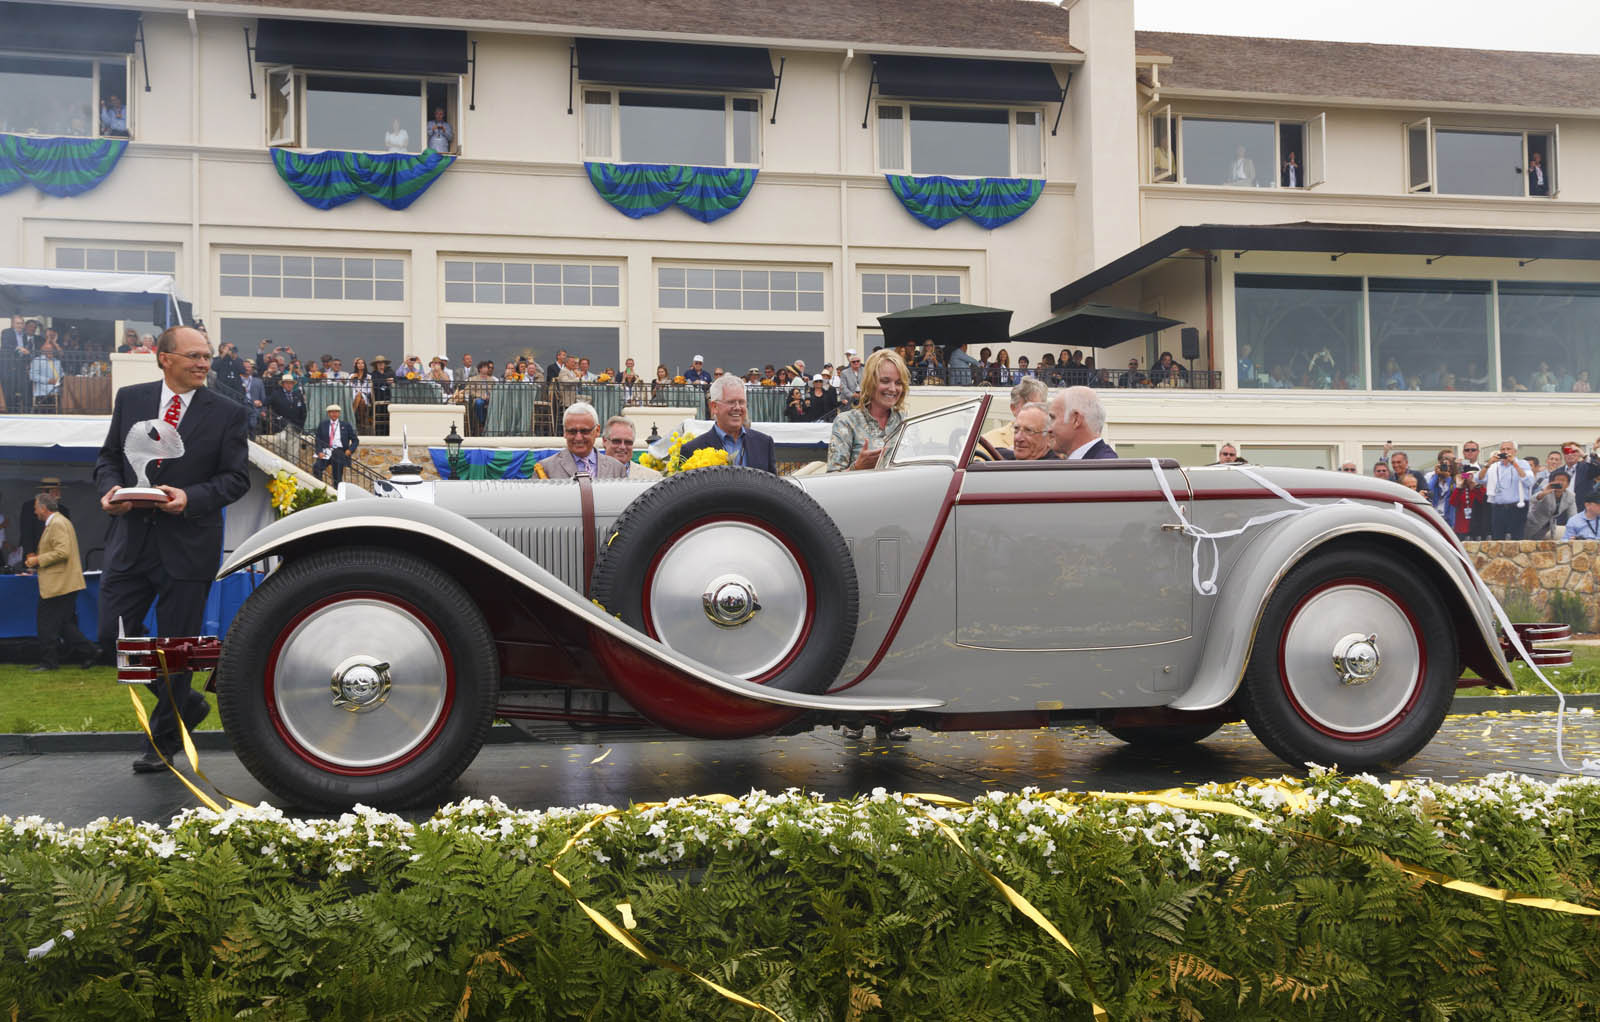 """Best of Show"" beim Pebble Beach Concours d'Elegance 2012: Mercedes-Benz Typ S mit Saoutchik-Karosserie, Baujahr 1928. Mit Verweis auf seinen Hubraum von 6,8 Litern wird das Fahrzeug mitunter auch als Typ 680 S bezeichnet. ;""Best of Show"" at the Pebble Beach Concours d'Elegance 2012: Mercedes-Benz Type S with Saoutchik bodywork, built in 1928. Because of its 6.8-litre engine capacity, the car was also known as Type 680 S.;"